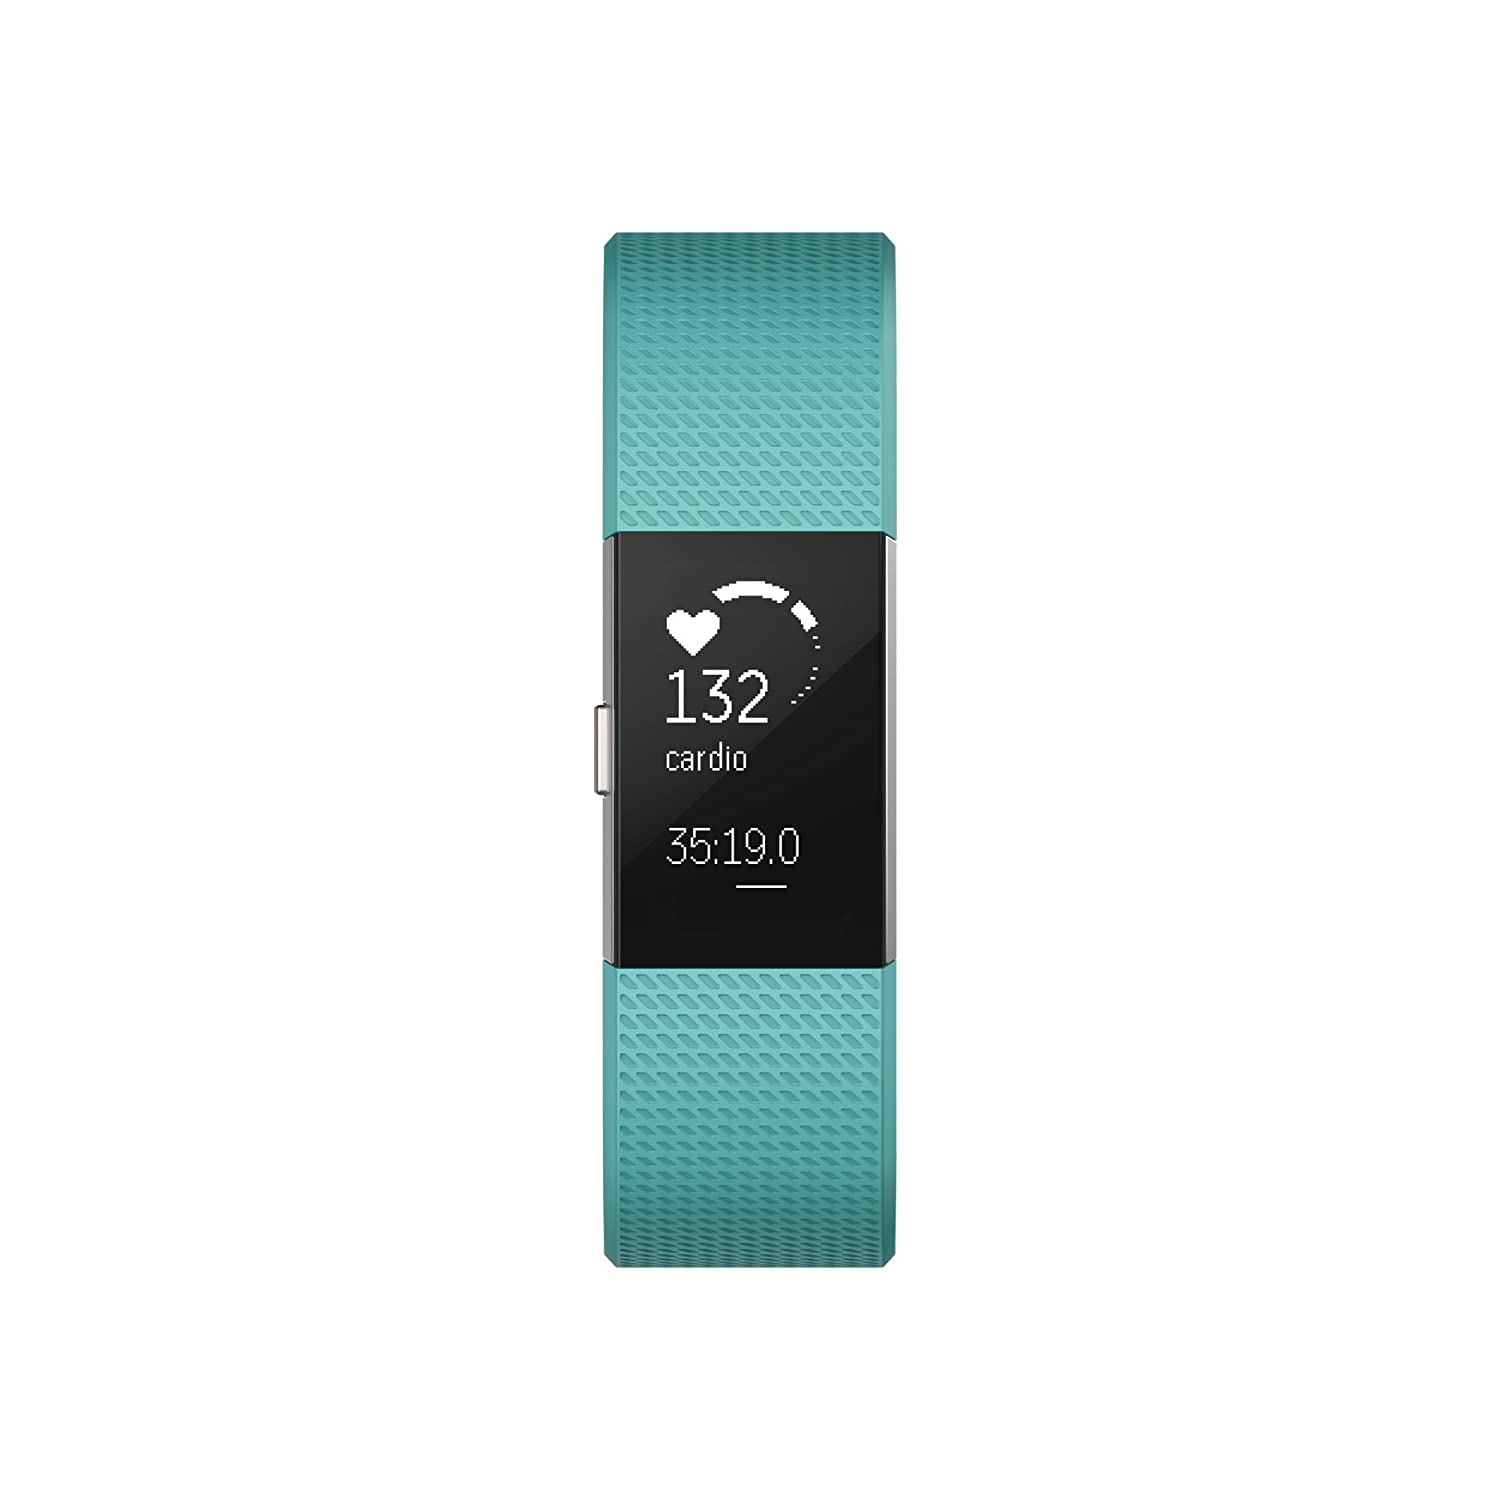 Fitbit Charge 2 Heart Rate Fitness Wristband, Teal, Small US Version